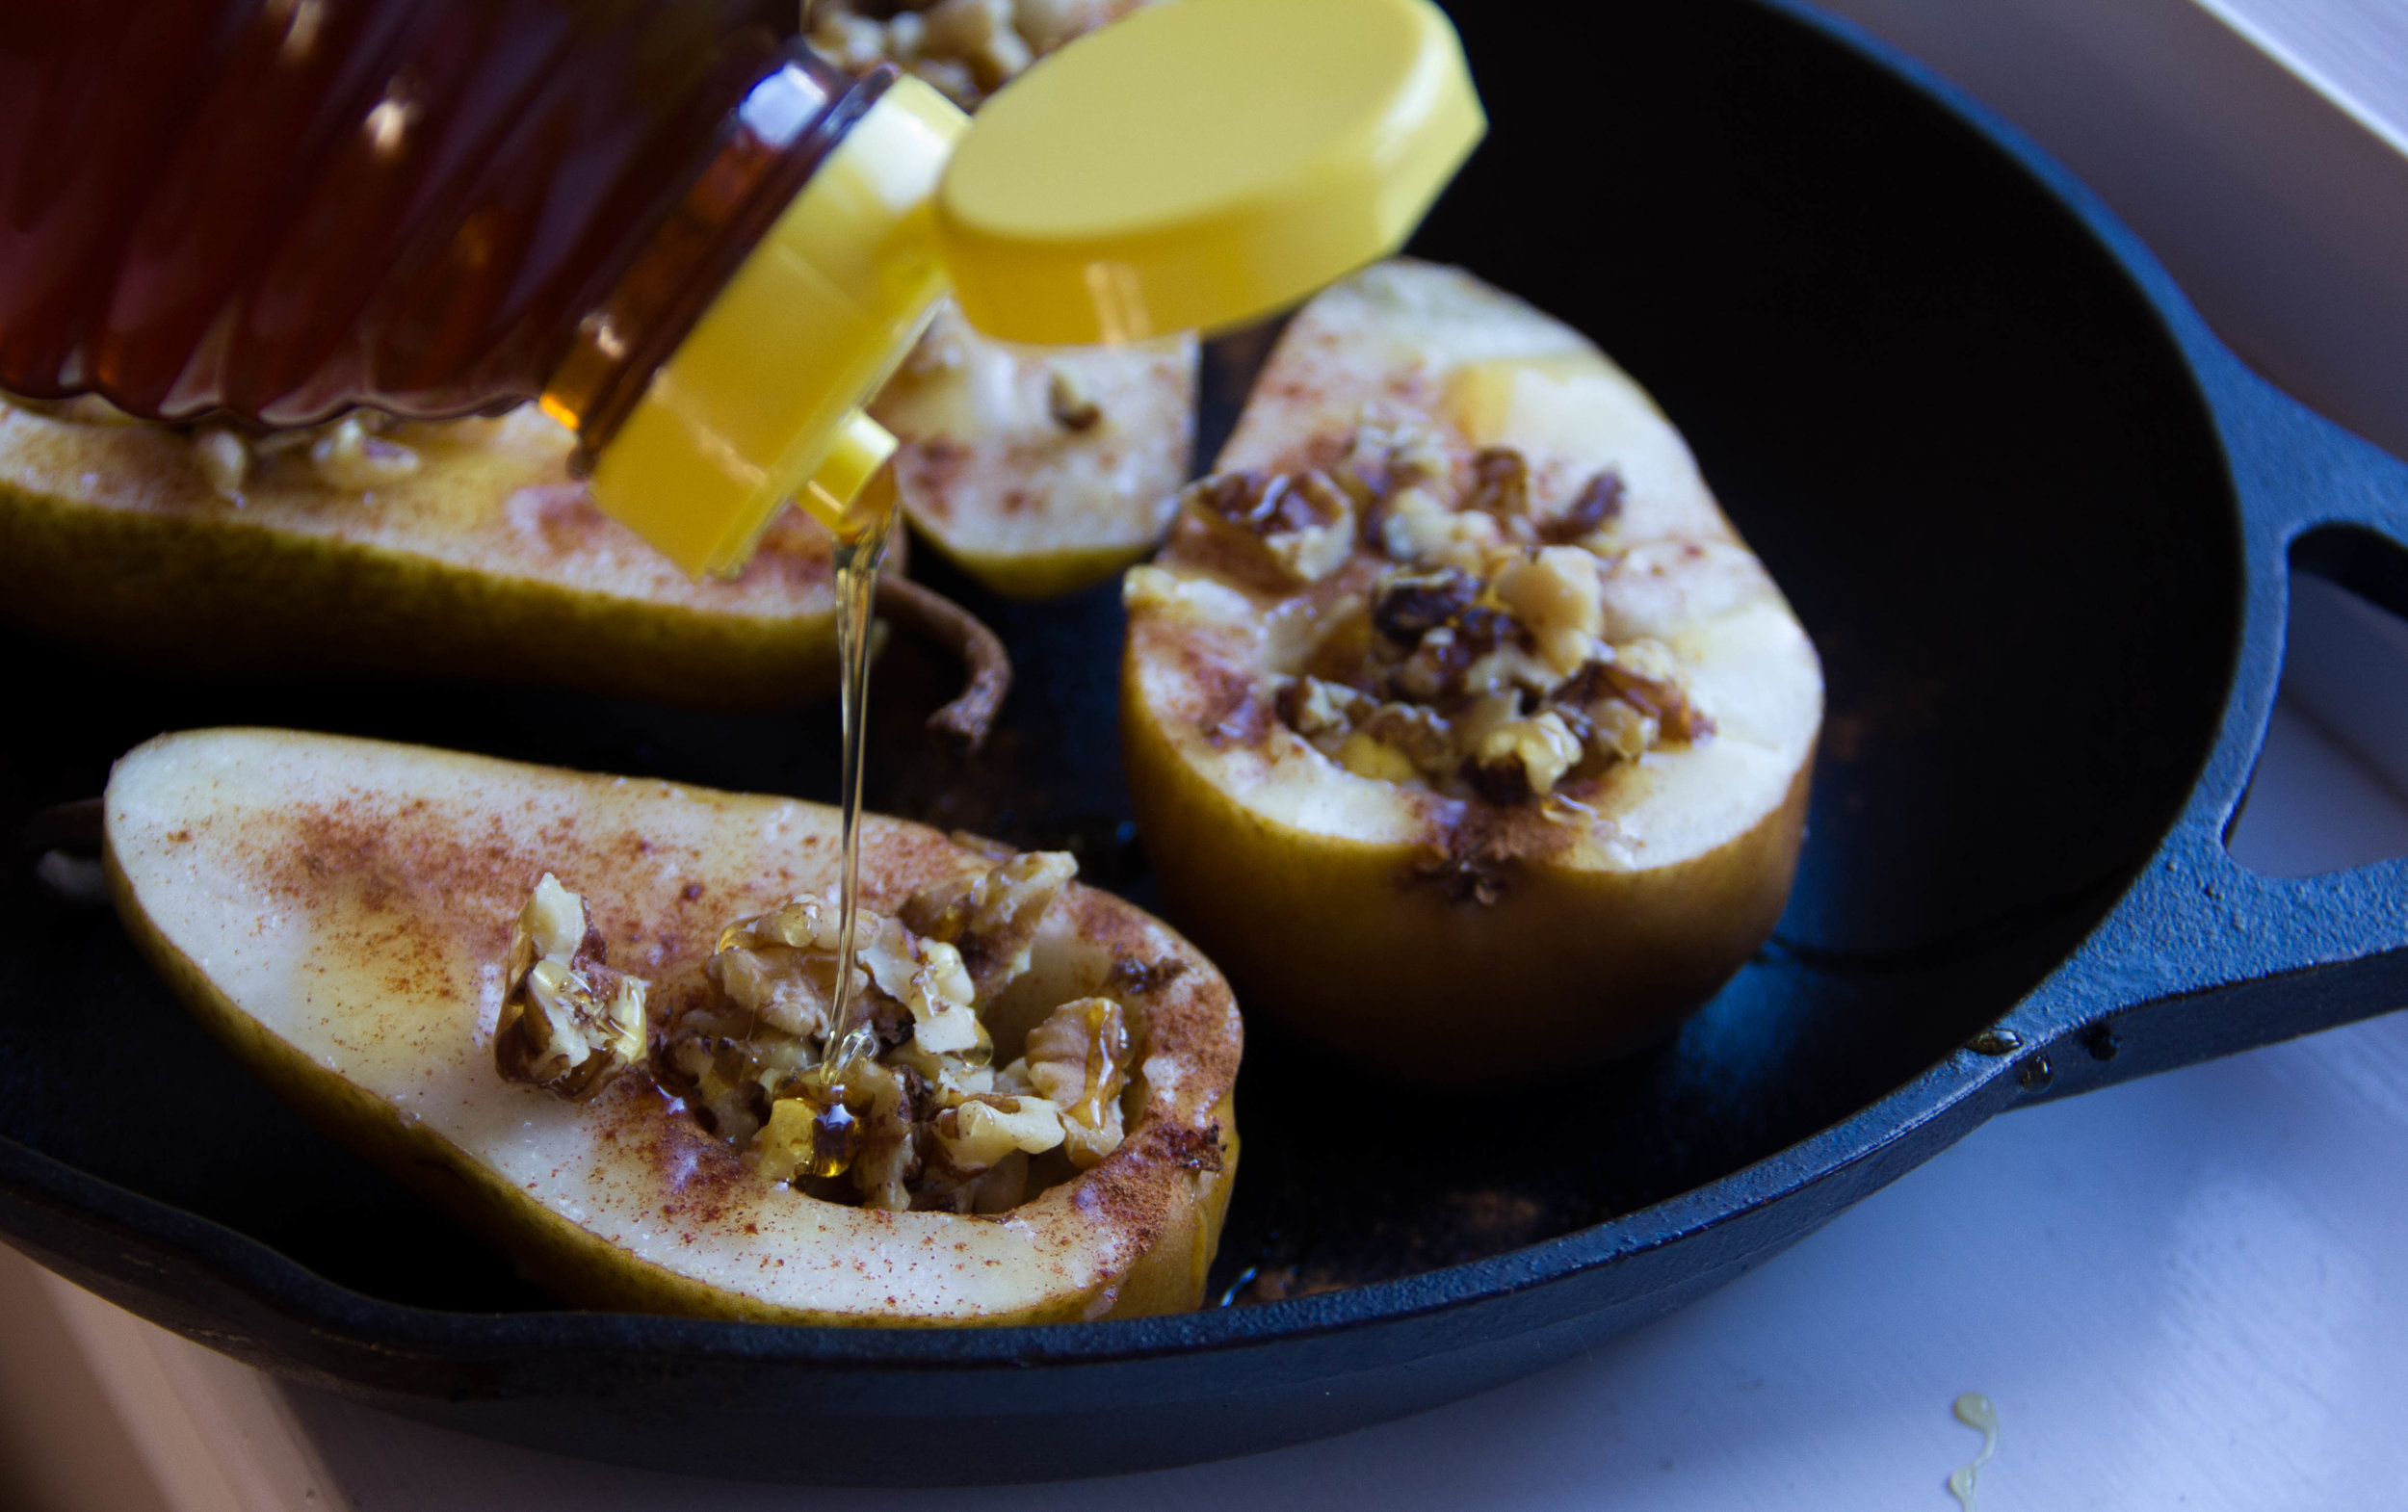 Drizzle the pears and walnuts with a couple of tablespoons of honey before you put them into the oven.